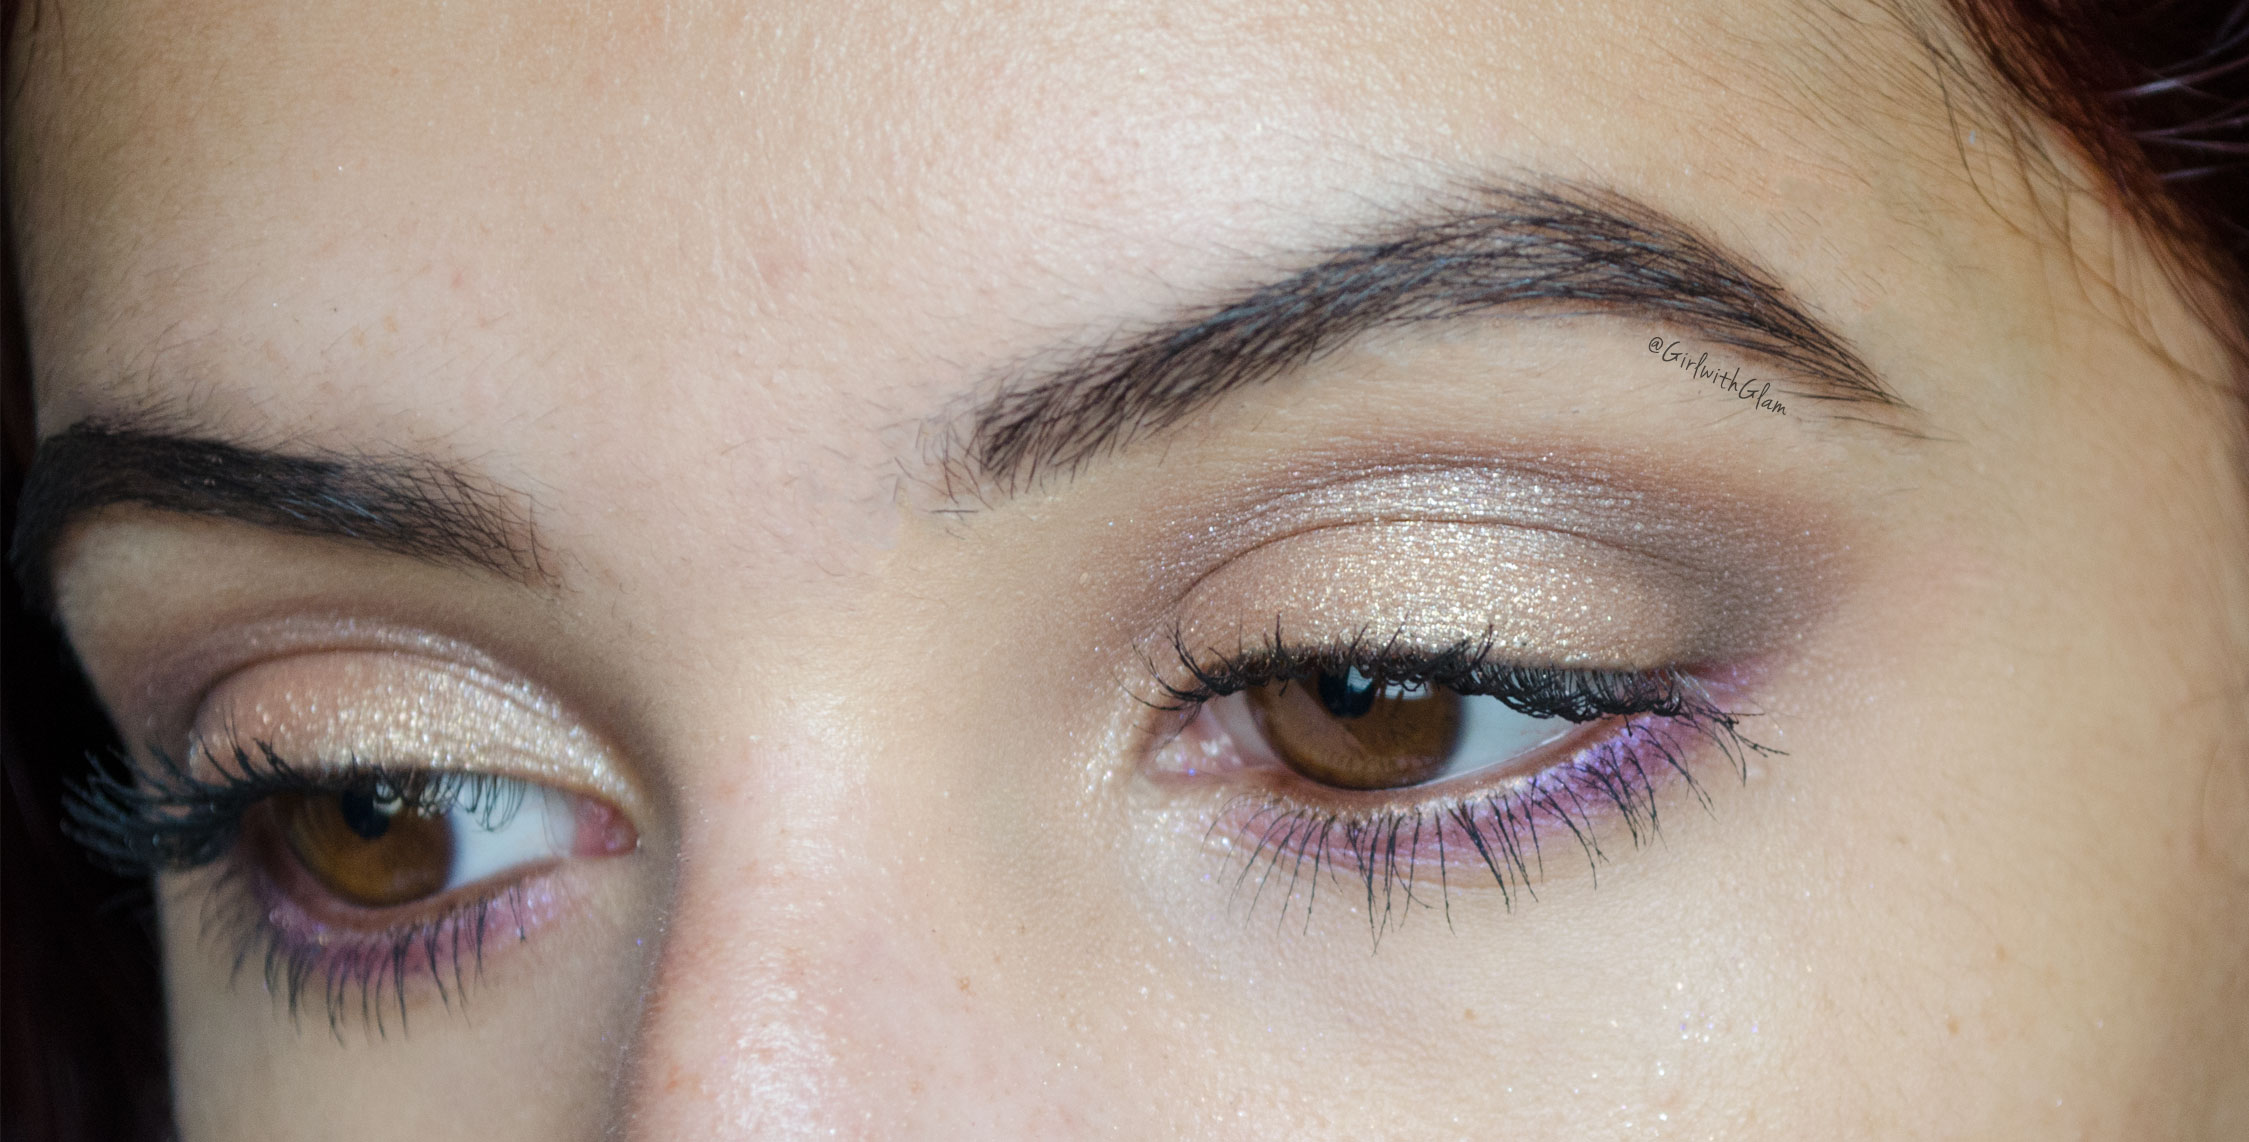 physicians_eyes_look